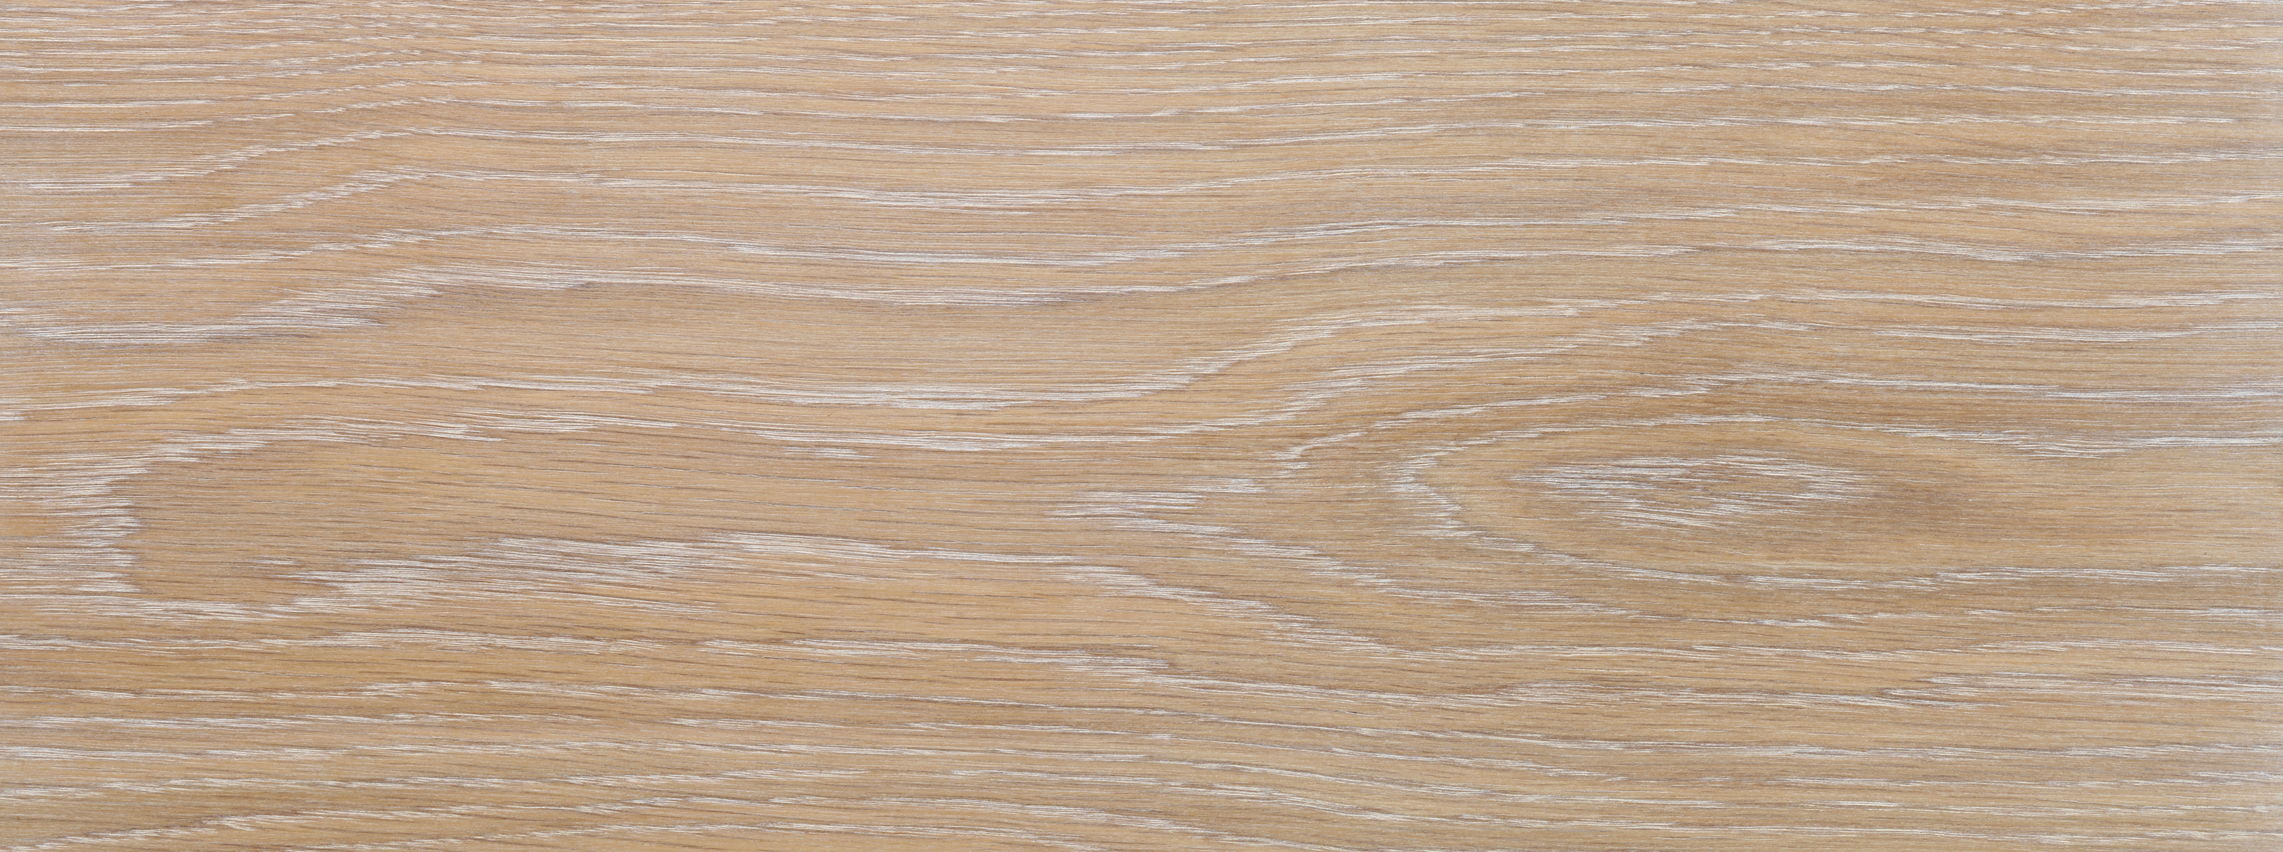 Oak 20mm engineered board, Brushed & White Limed, 1sqm pack